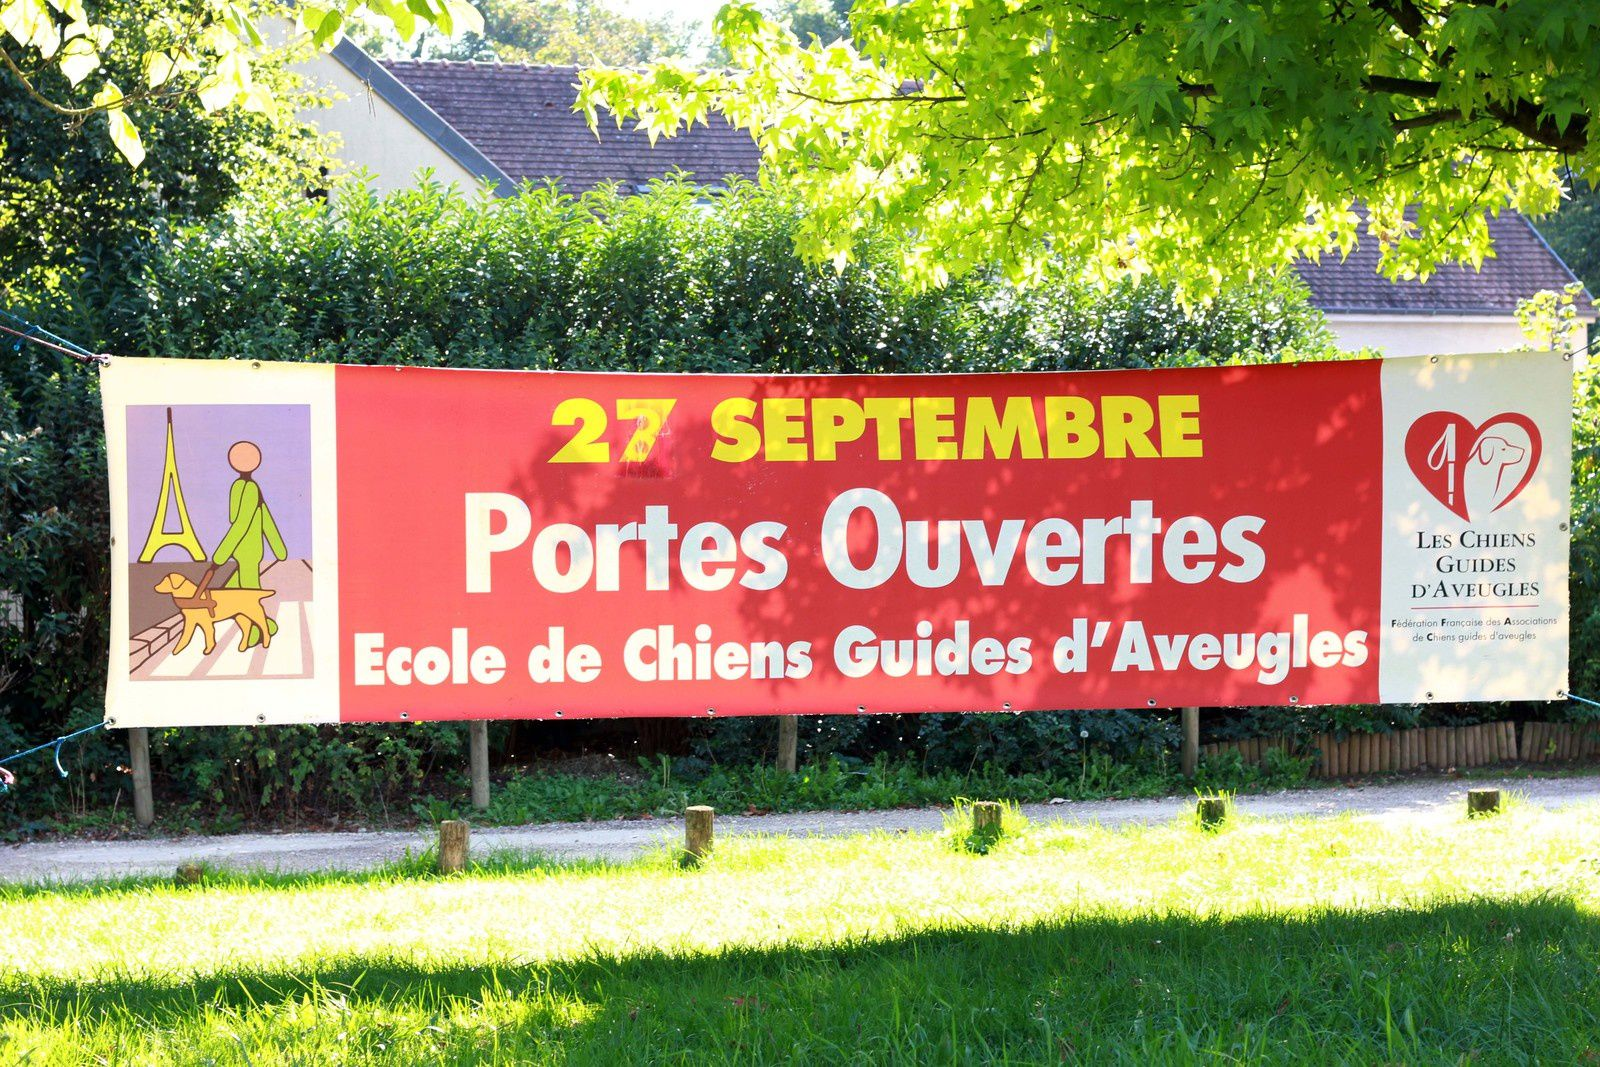 Chien guide d'aveugle